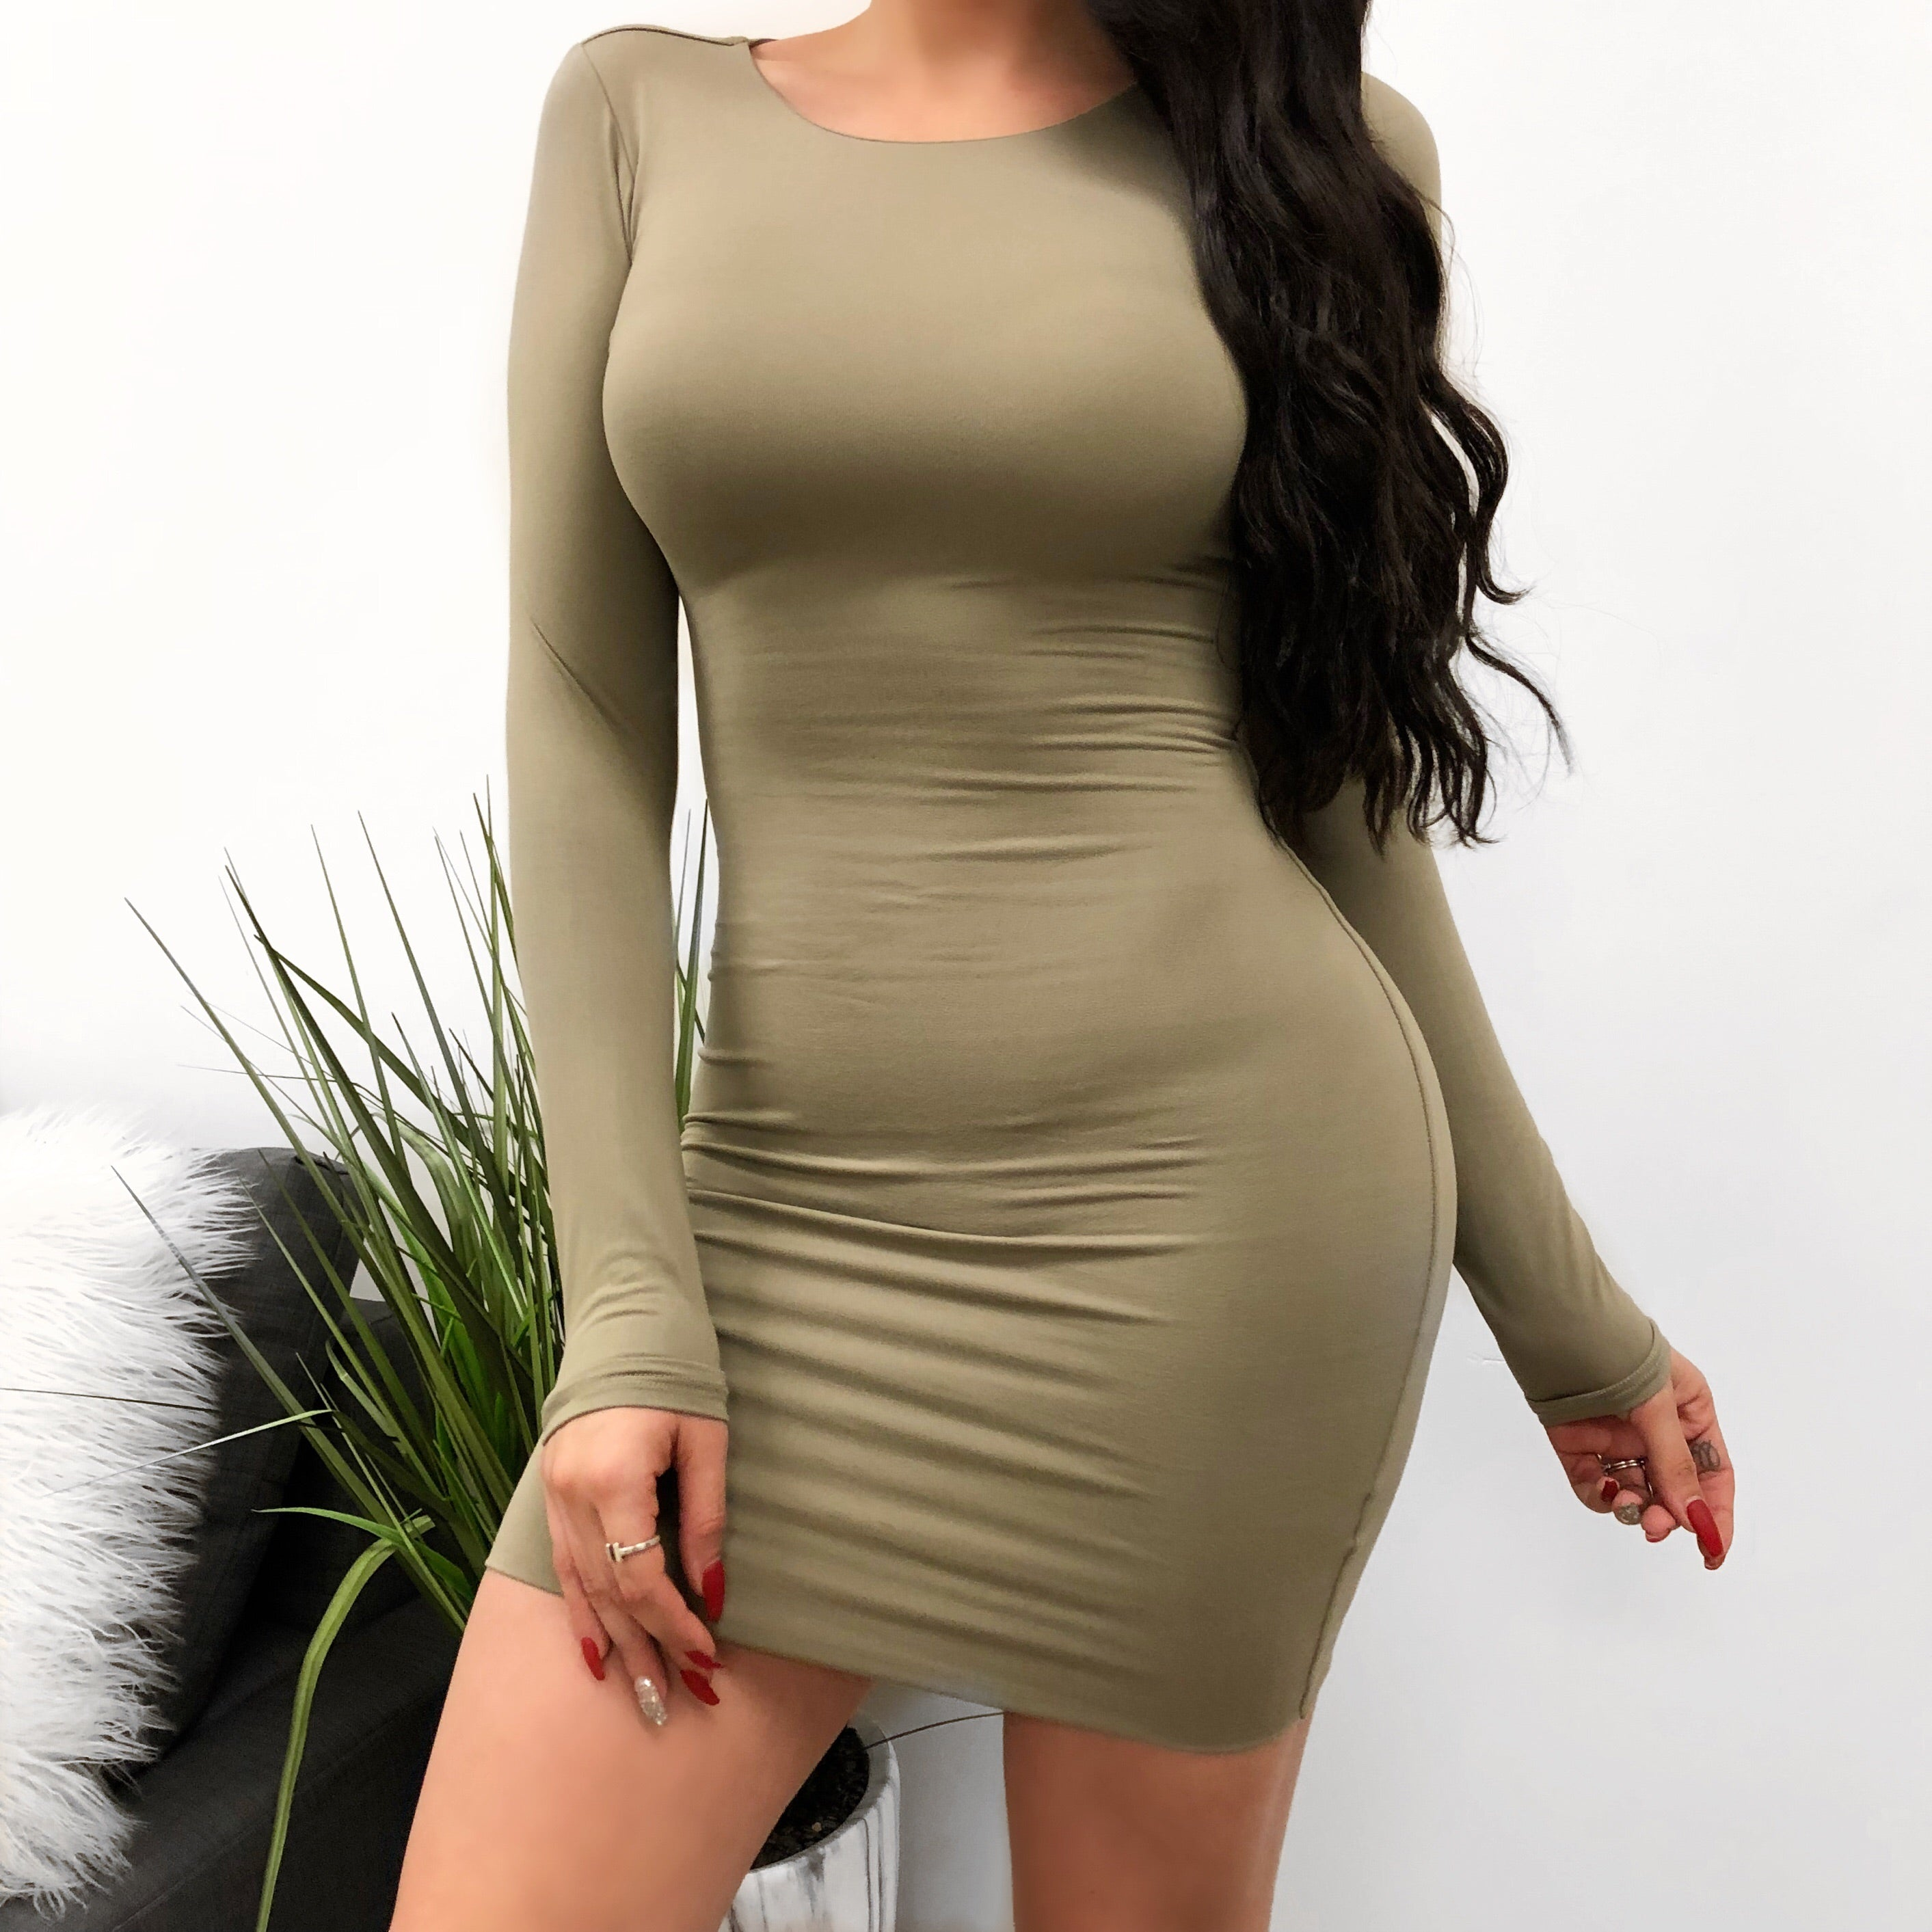 taupe wide crew neck long sleeve dress. dress hugs the body and arms. dress length is to mid thigh.